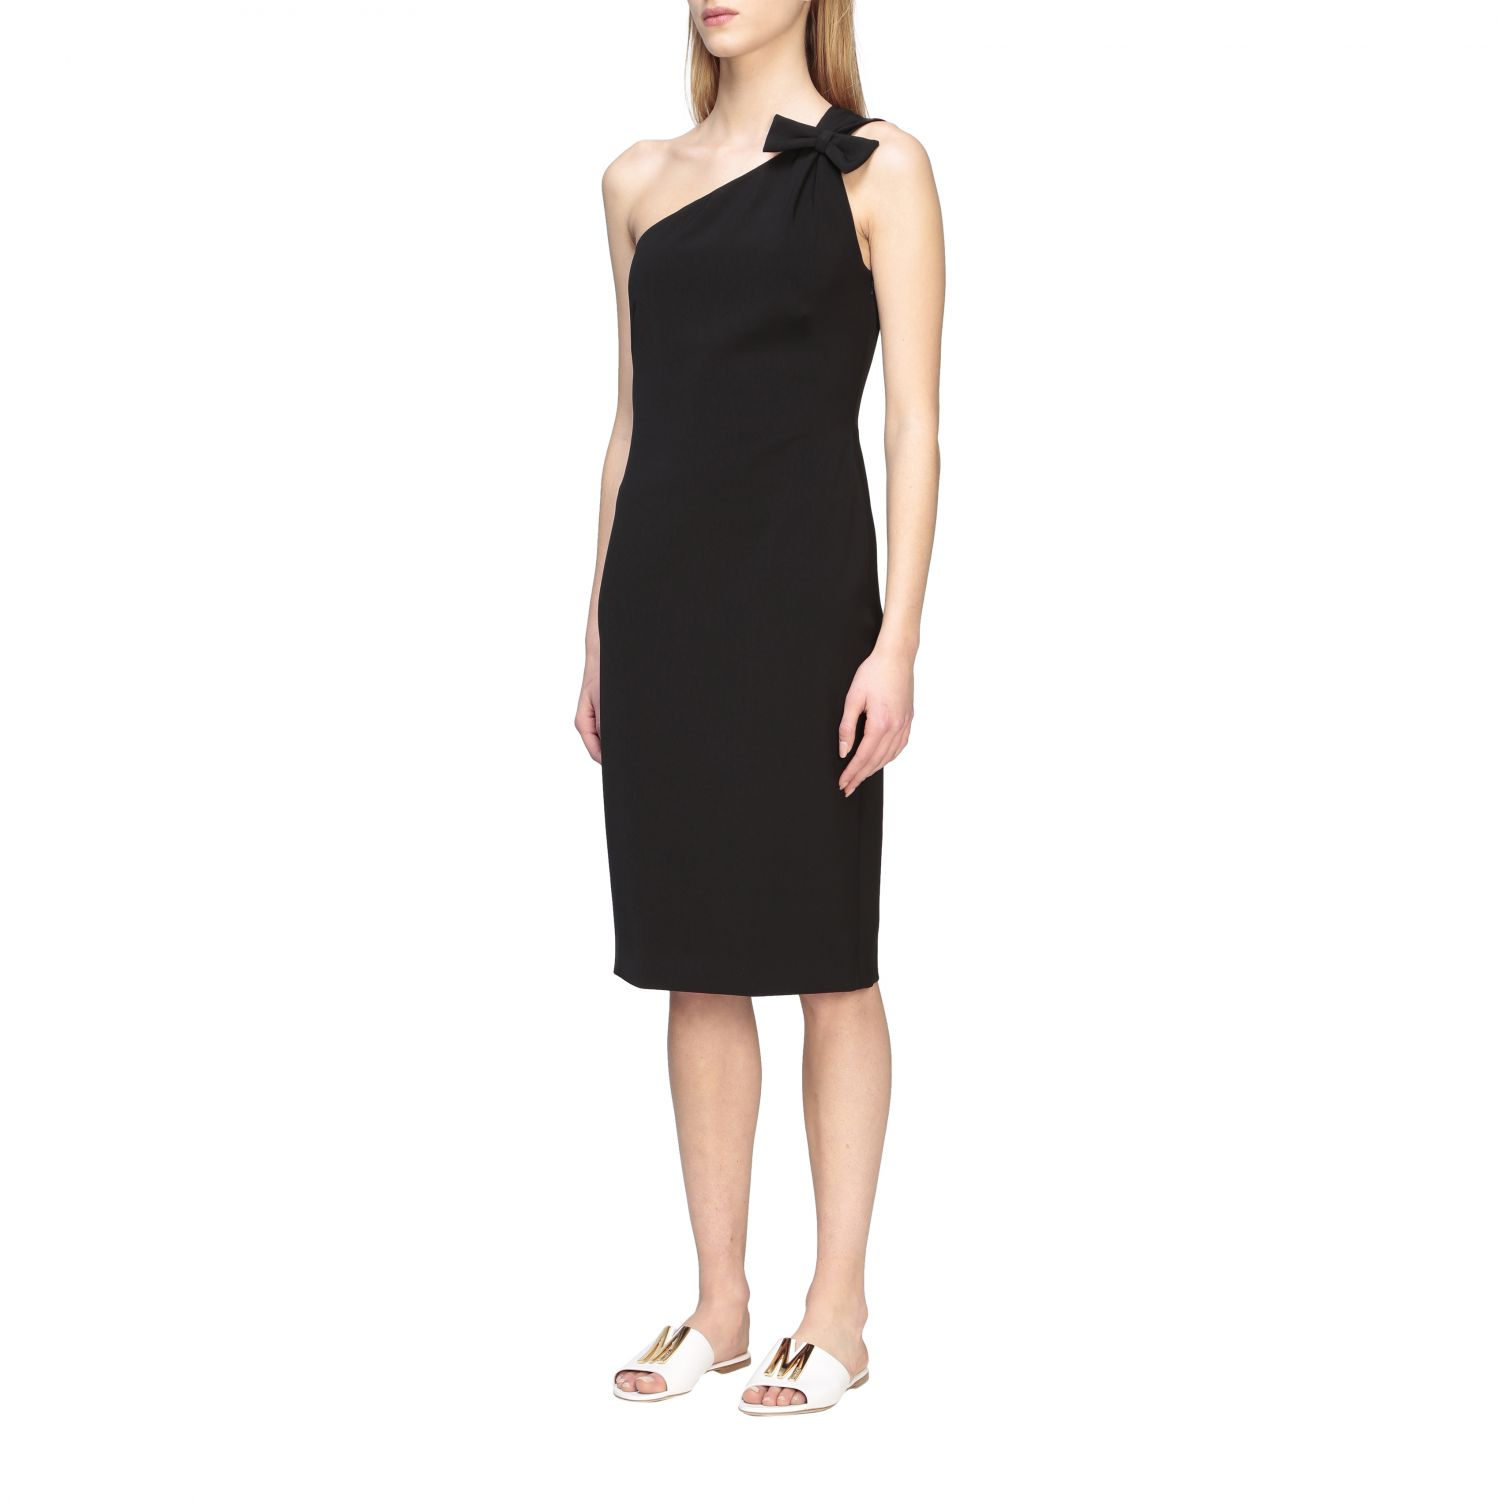 Dress Boutique Moschino: Dress women Boutique Moschino black 3